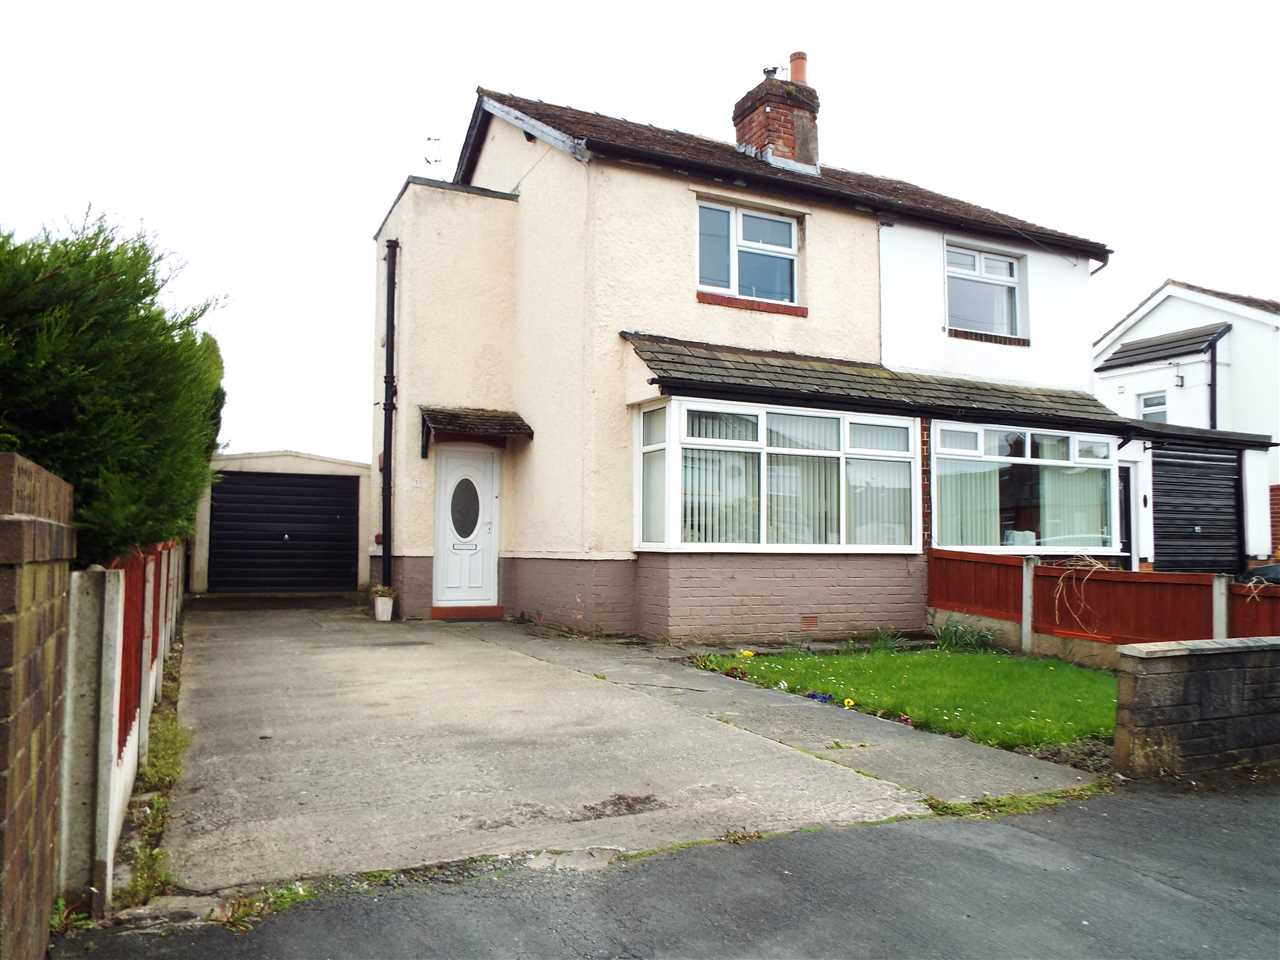 2 bed semi-detached to rent in Rothwell Road, Anderton - Property Image 1